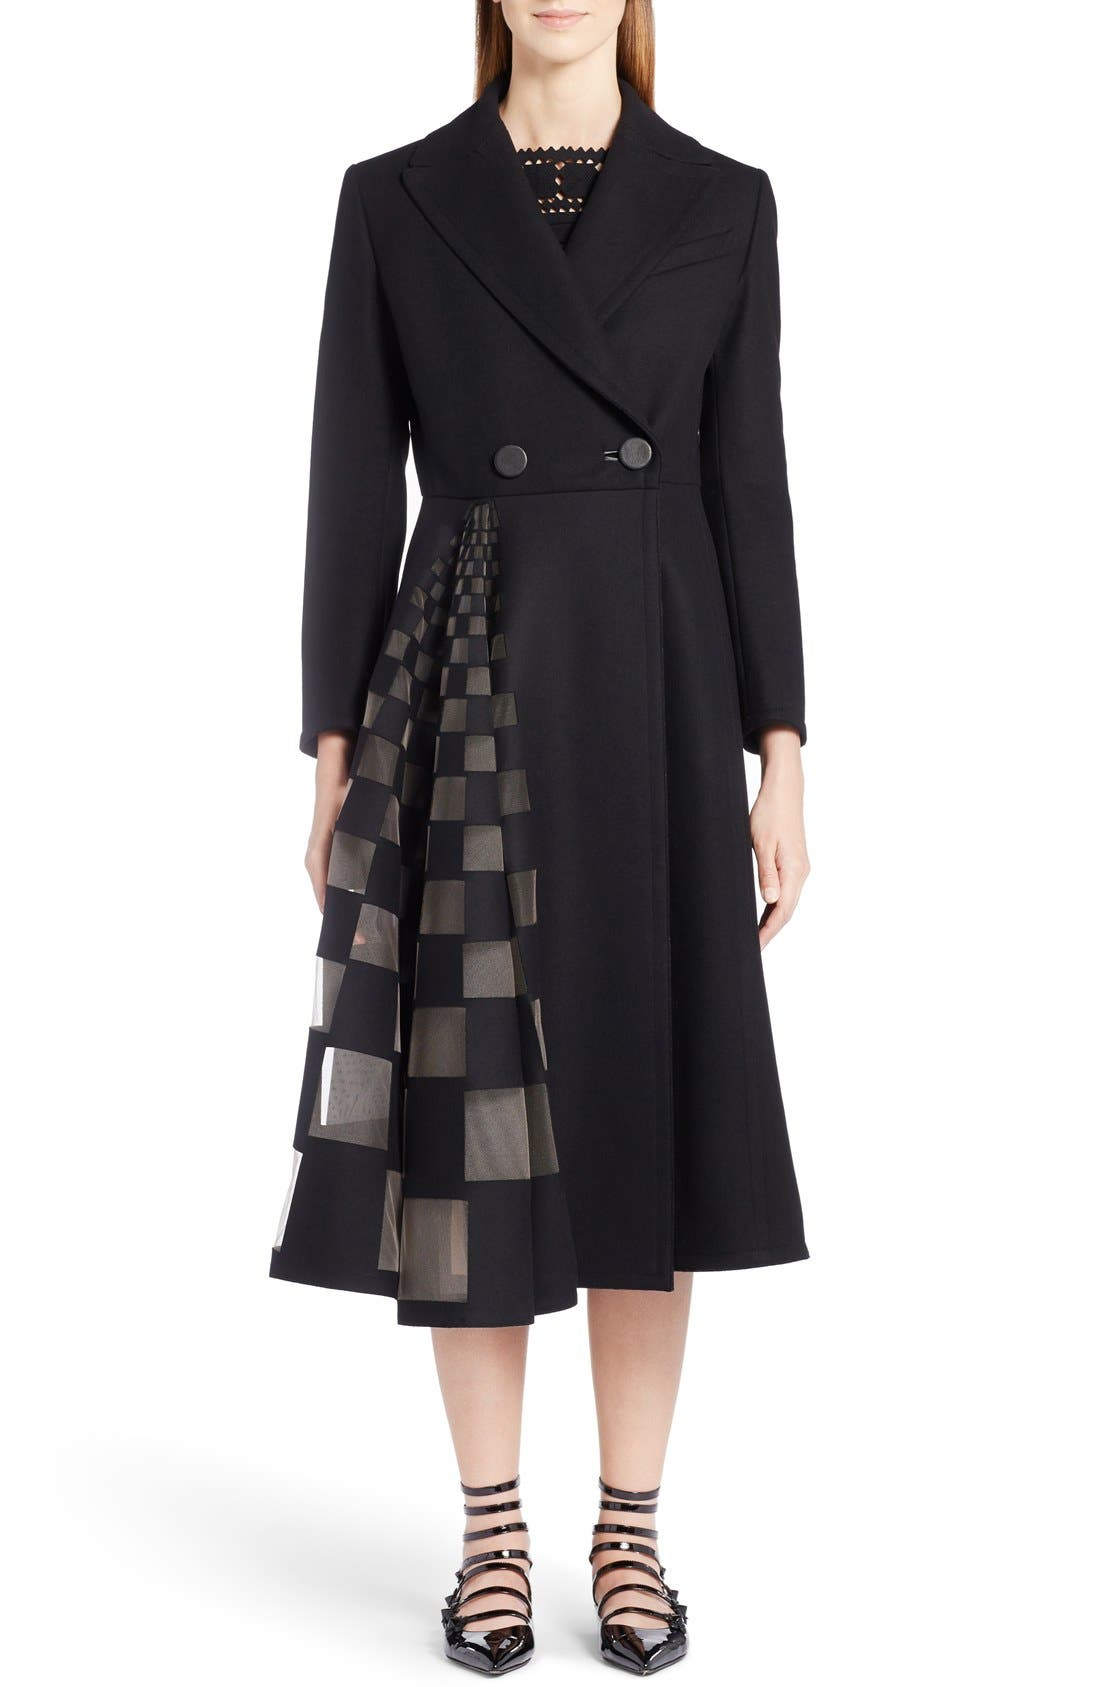 FENDI Tulle Inset Stretch Wool & Cashmere Coat